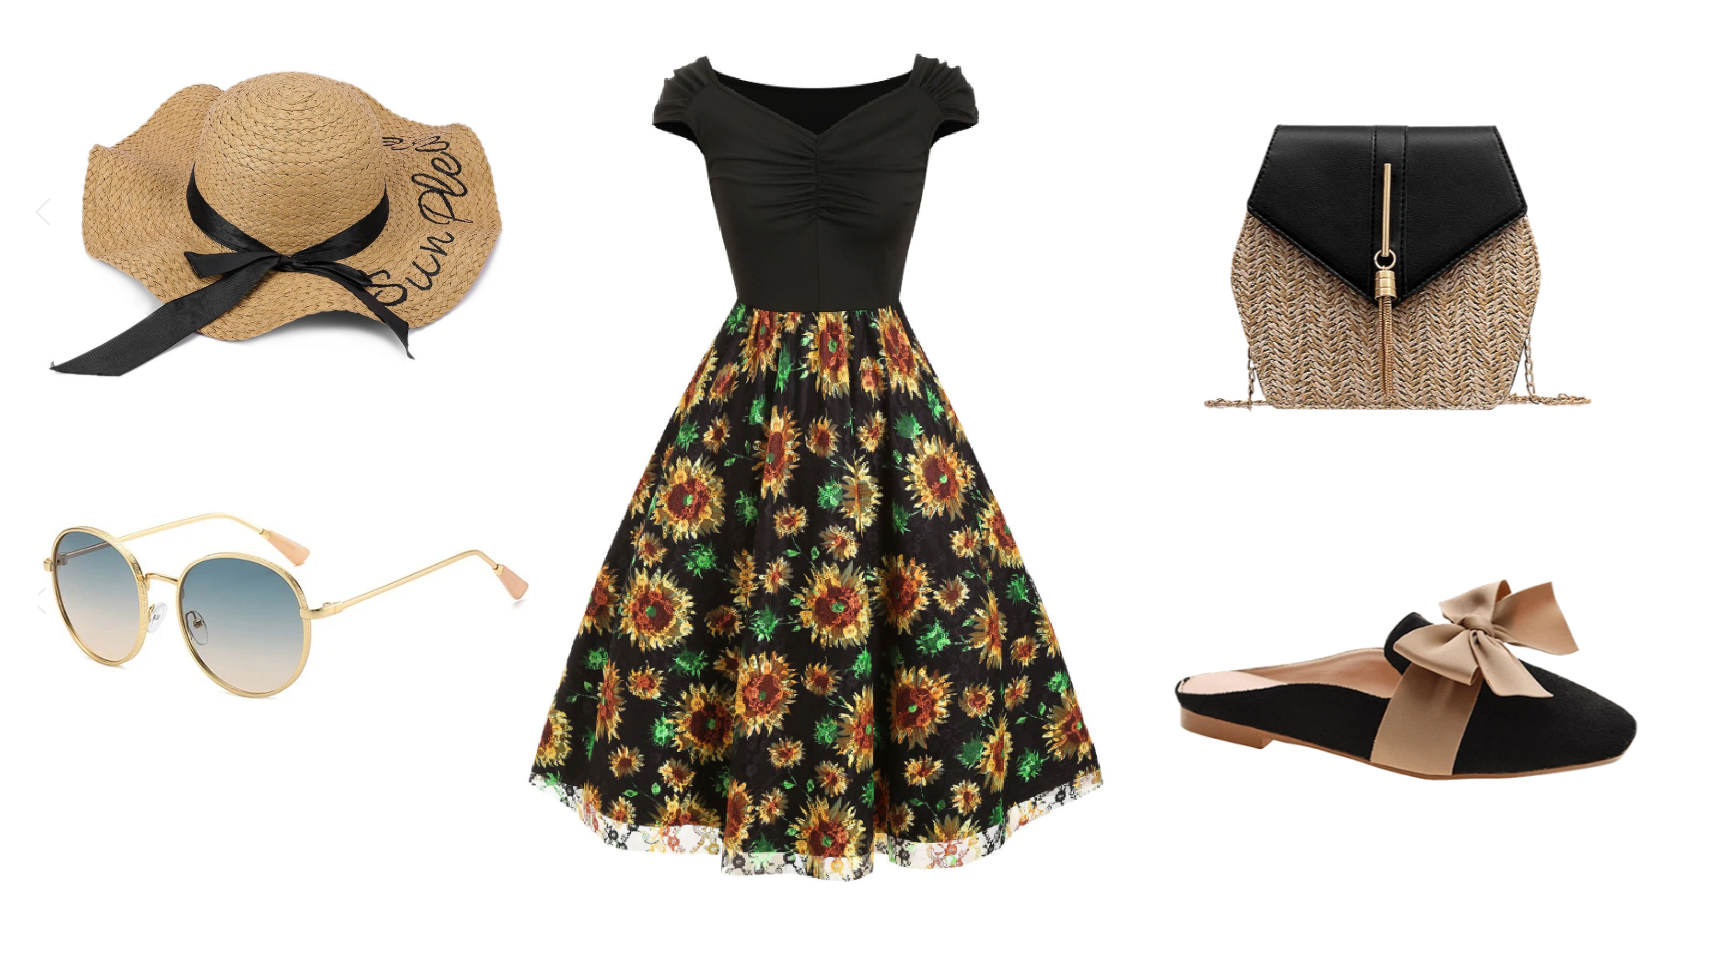 dresslily-4-sunflower-dress-bag-shoes-hat-summer-outfit-Lakierowniczka